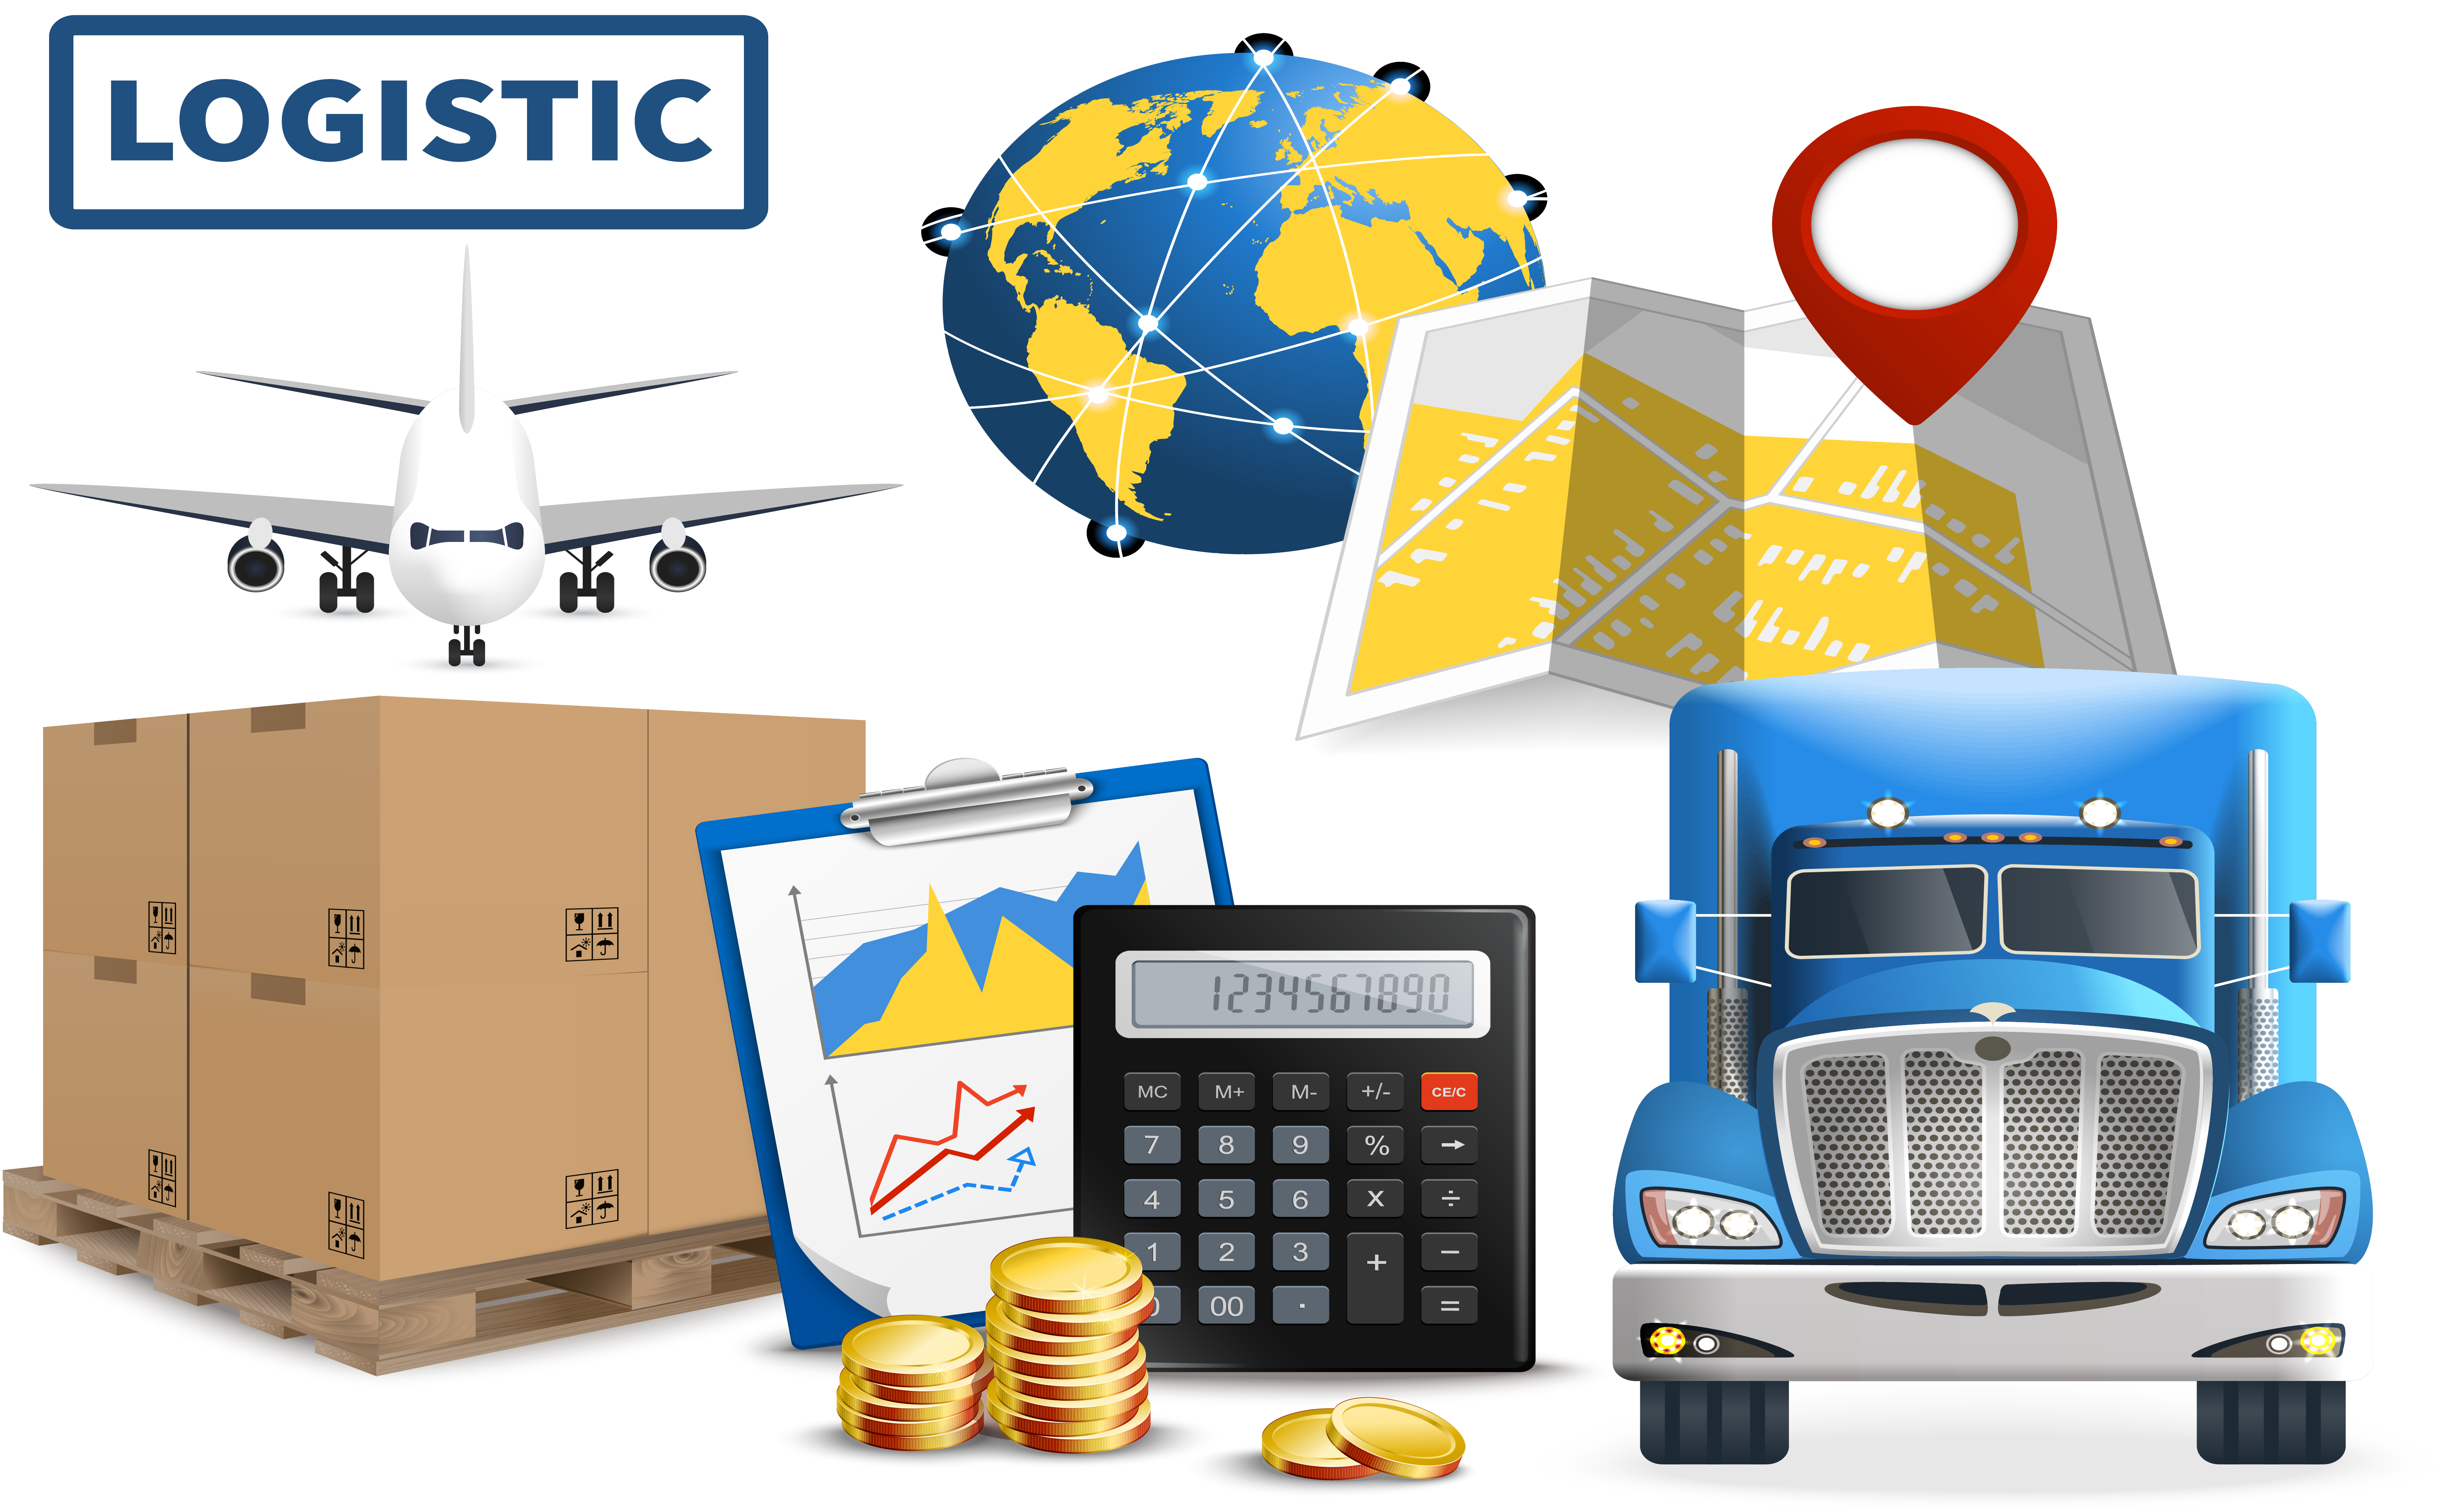 logistics seo services in gurgaon - 88gravity - Digital Marketing Company